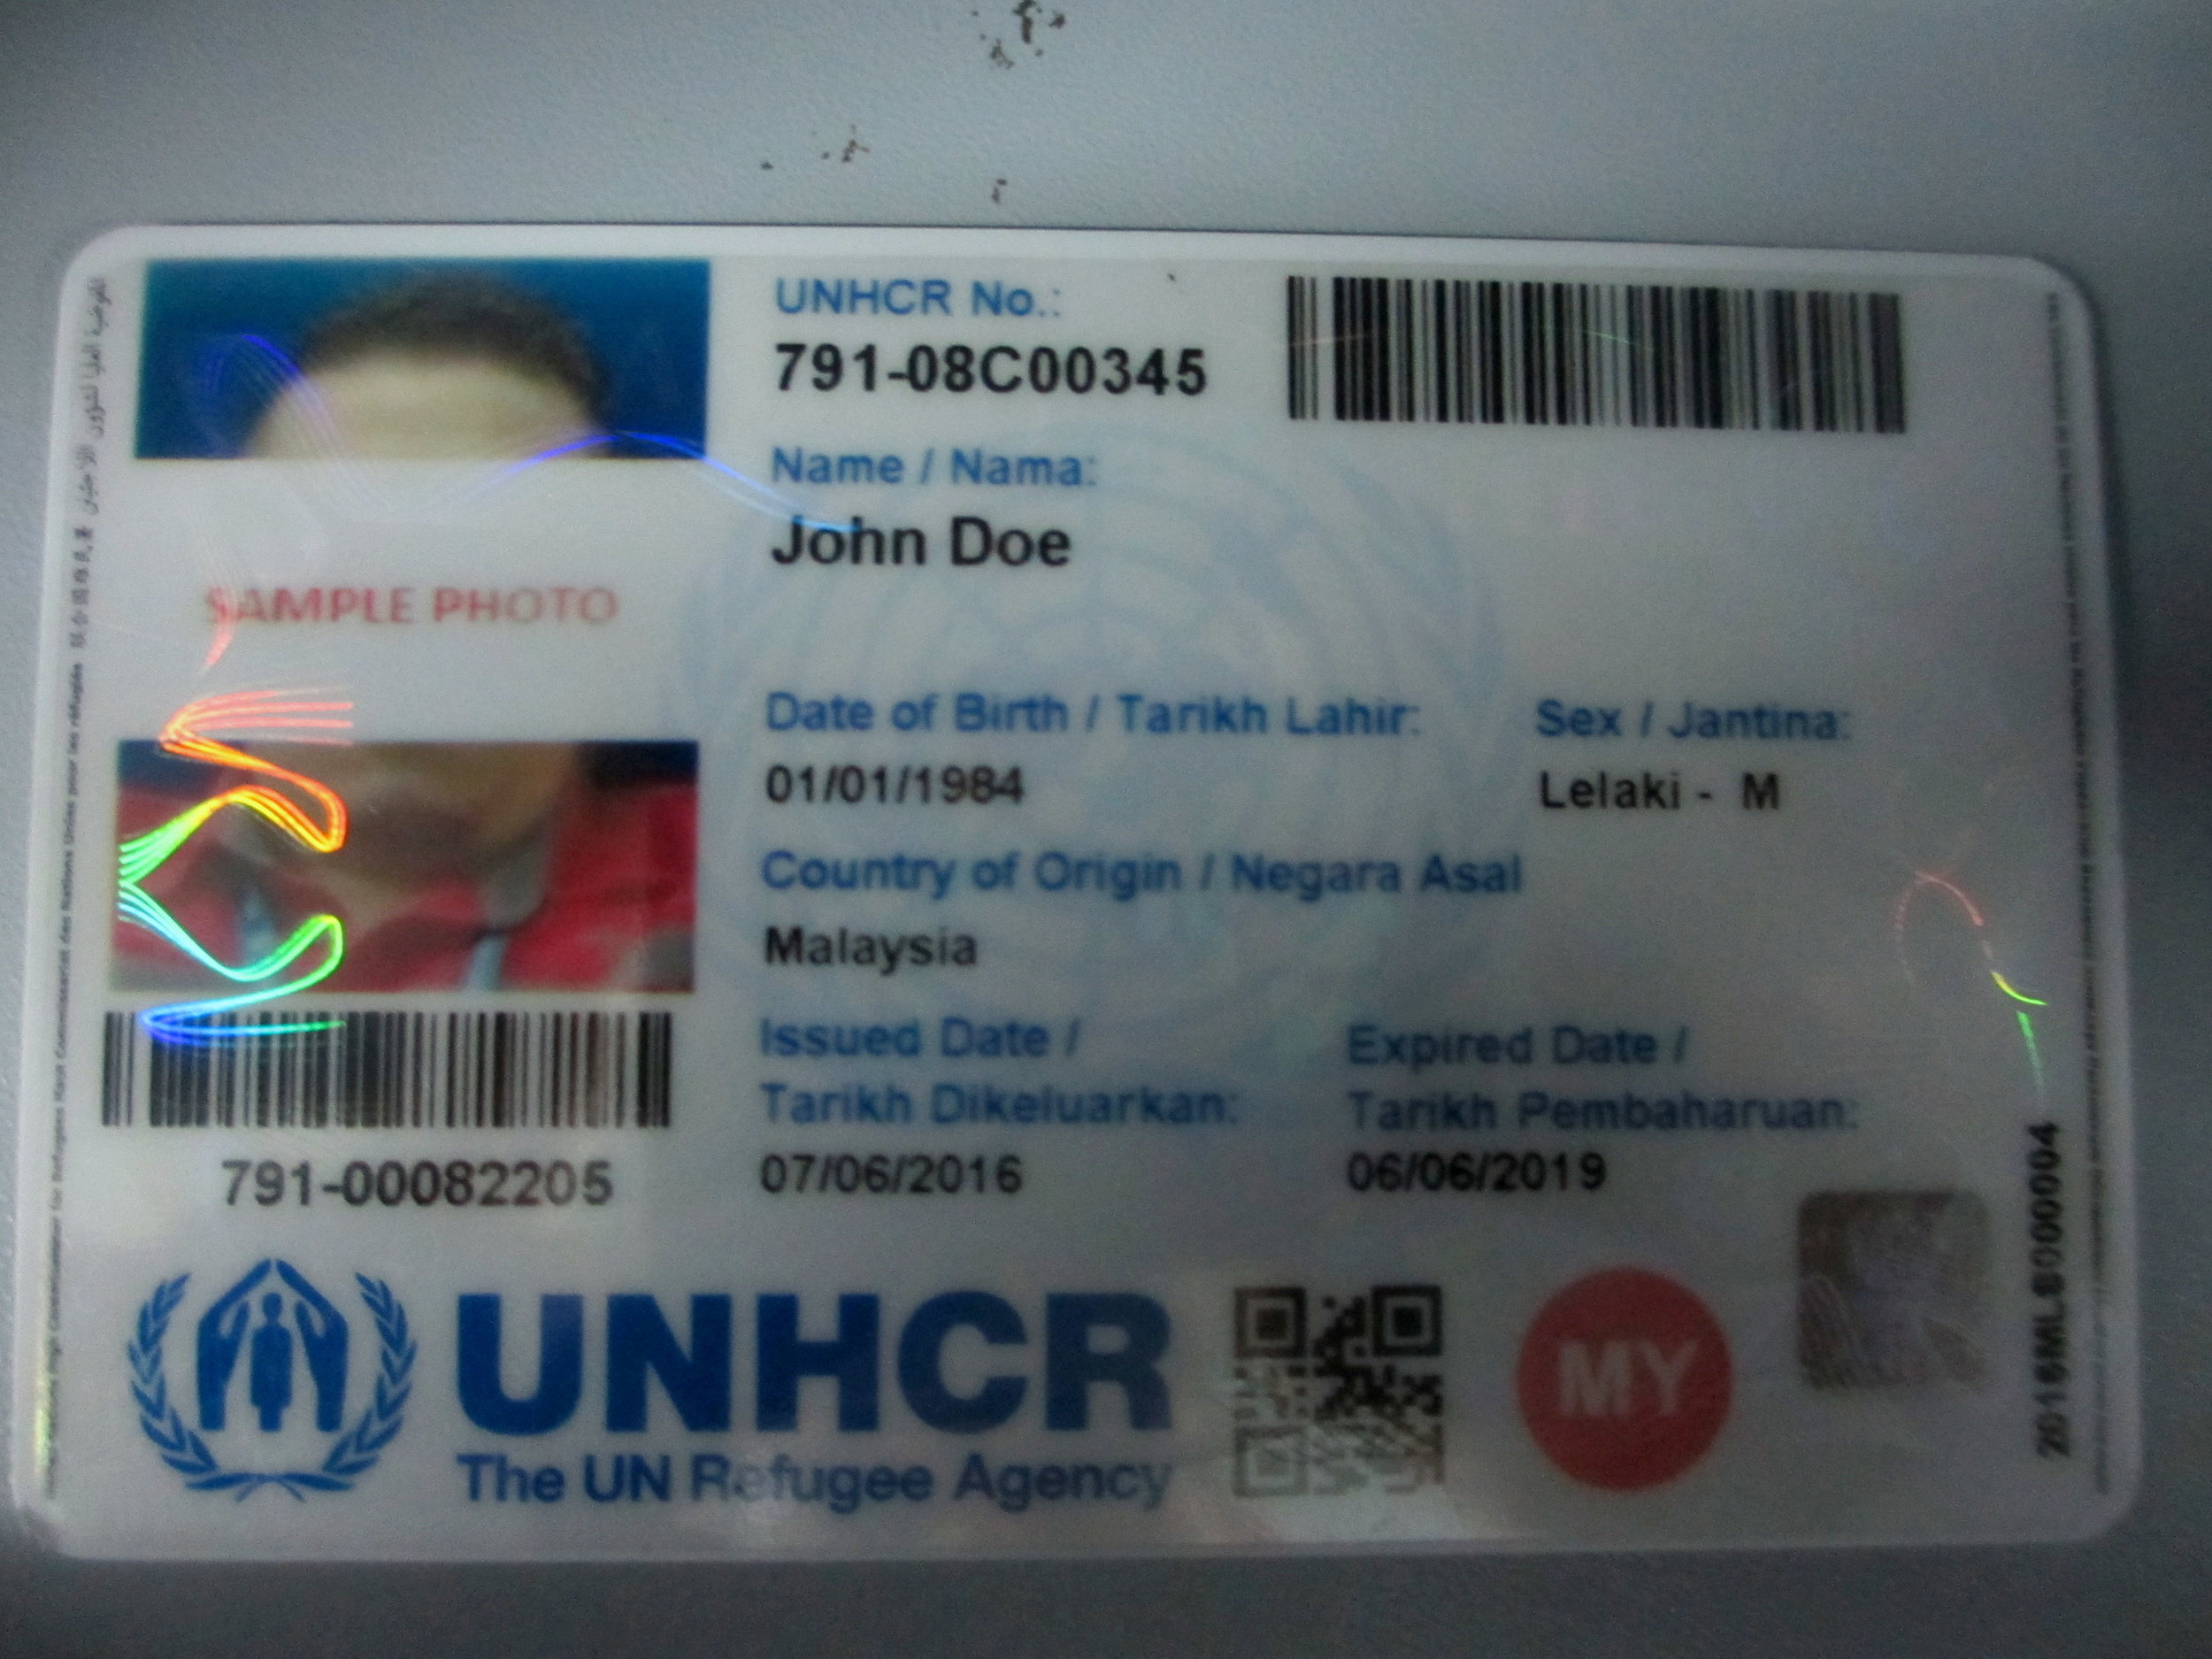 UNHCR provides identification cards which reduces the possibility of arrest and increases the ability to find work and receive medical treatment at reduced cost.But not all Rohingya have been able to get these cards.